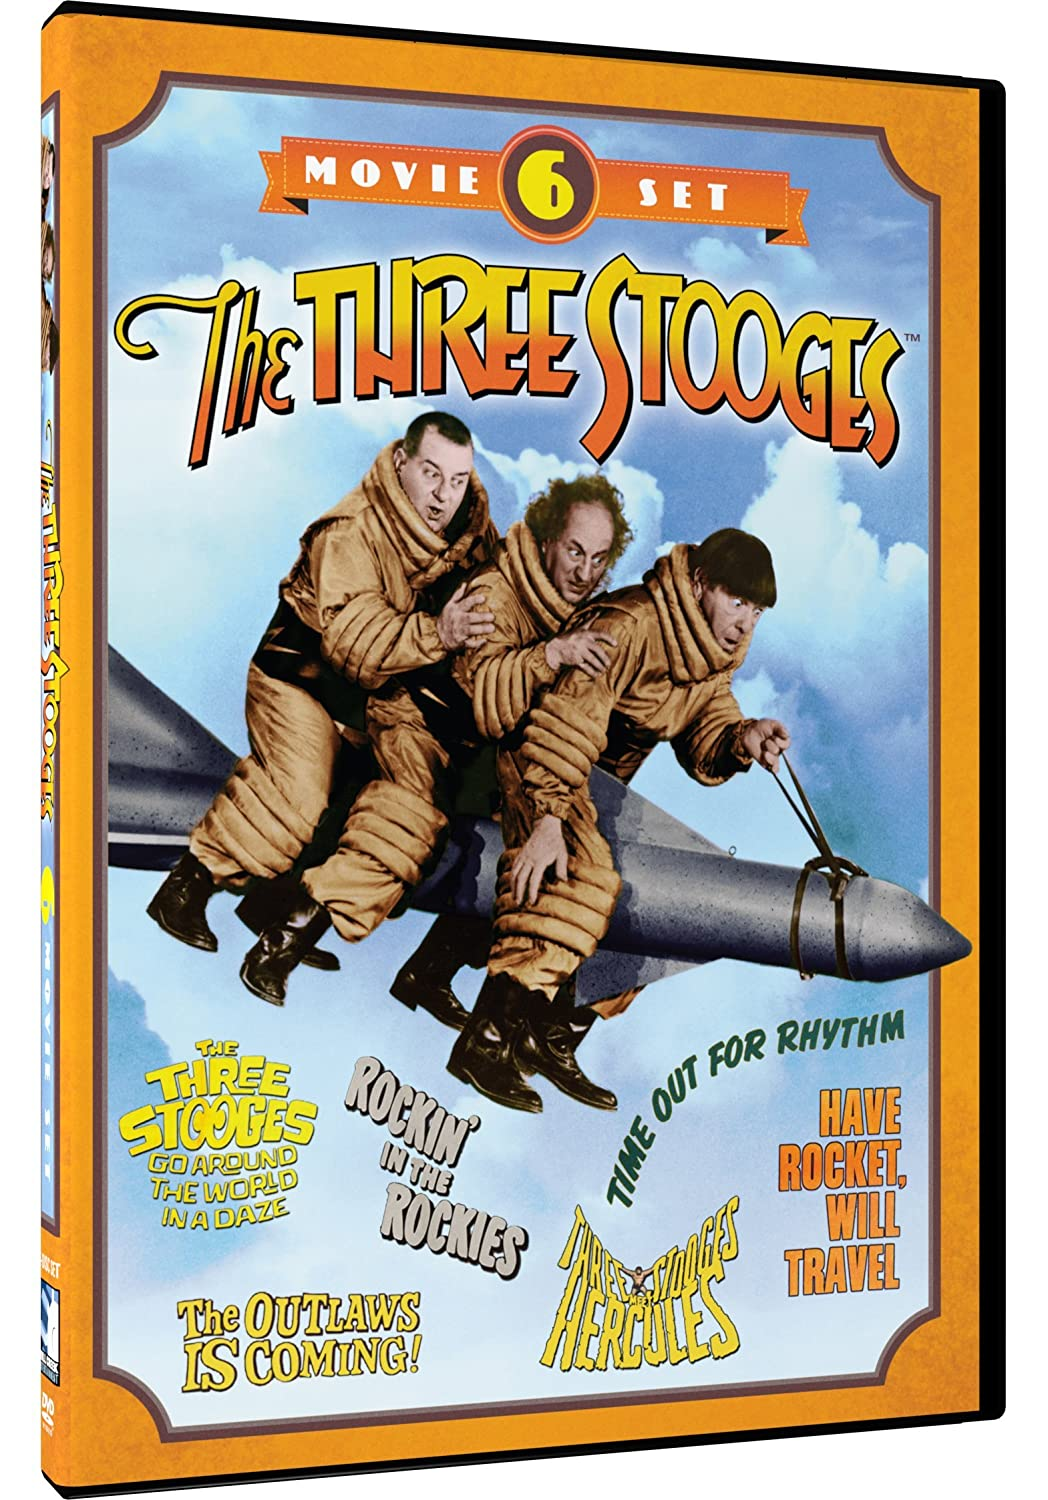 Americas got talent 2017 3 stooges - Amazon Com The Three Stooges Collection 6 Movie Set Have Rocket Will Travel The Outlaws Is Coming Rockin In The Rockies Three Stooges Go Around